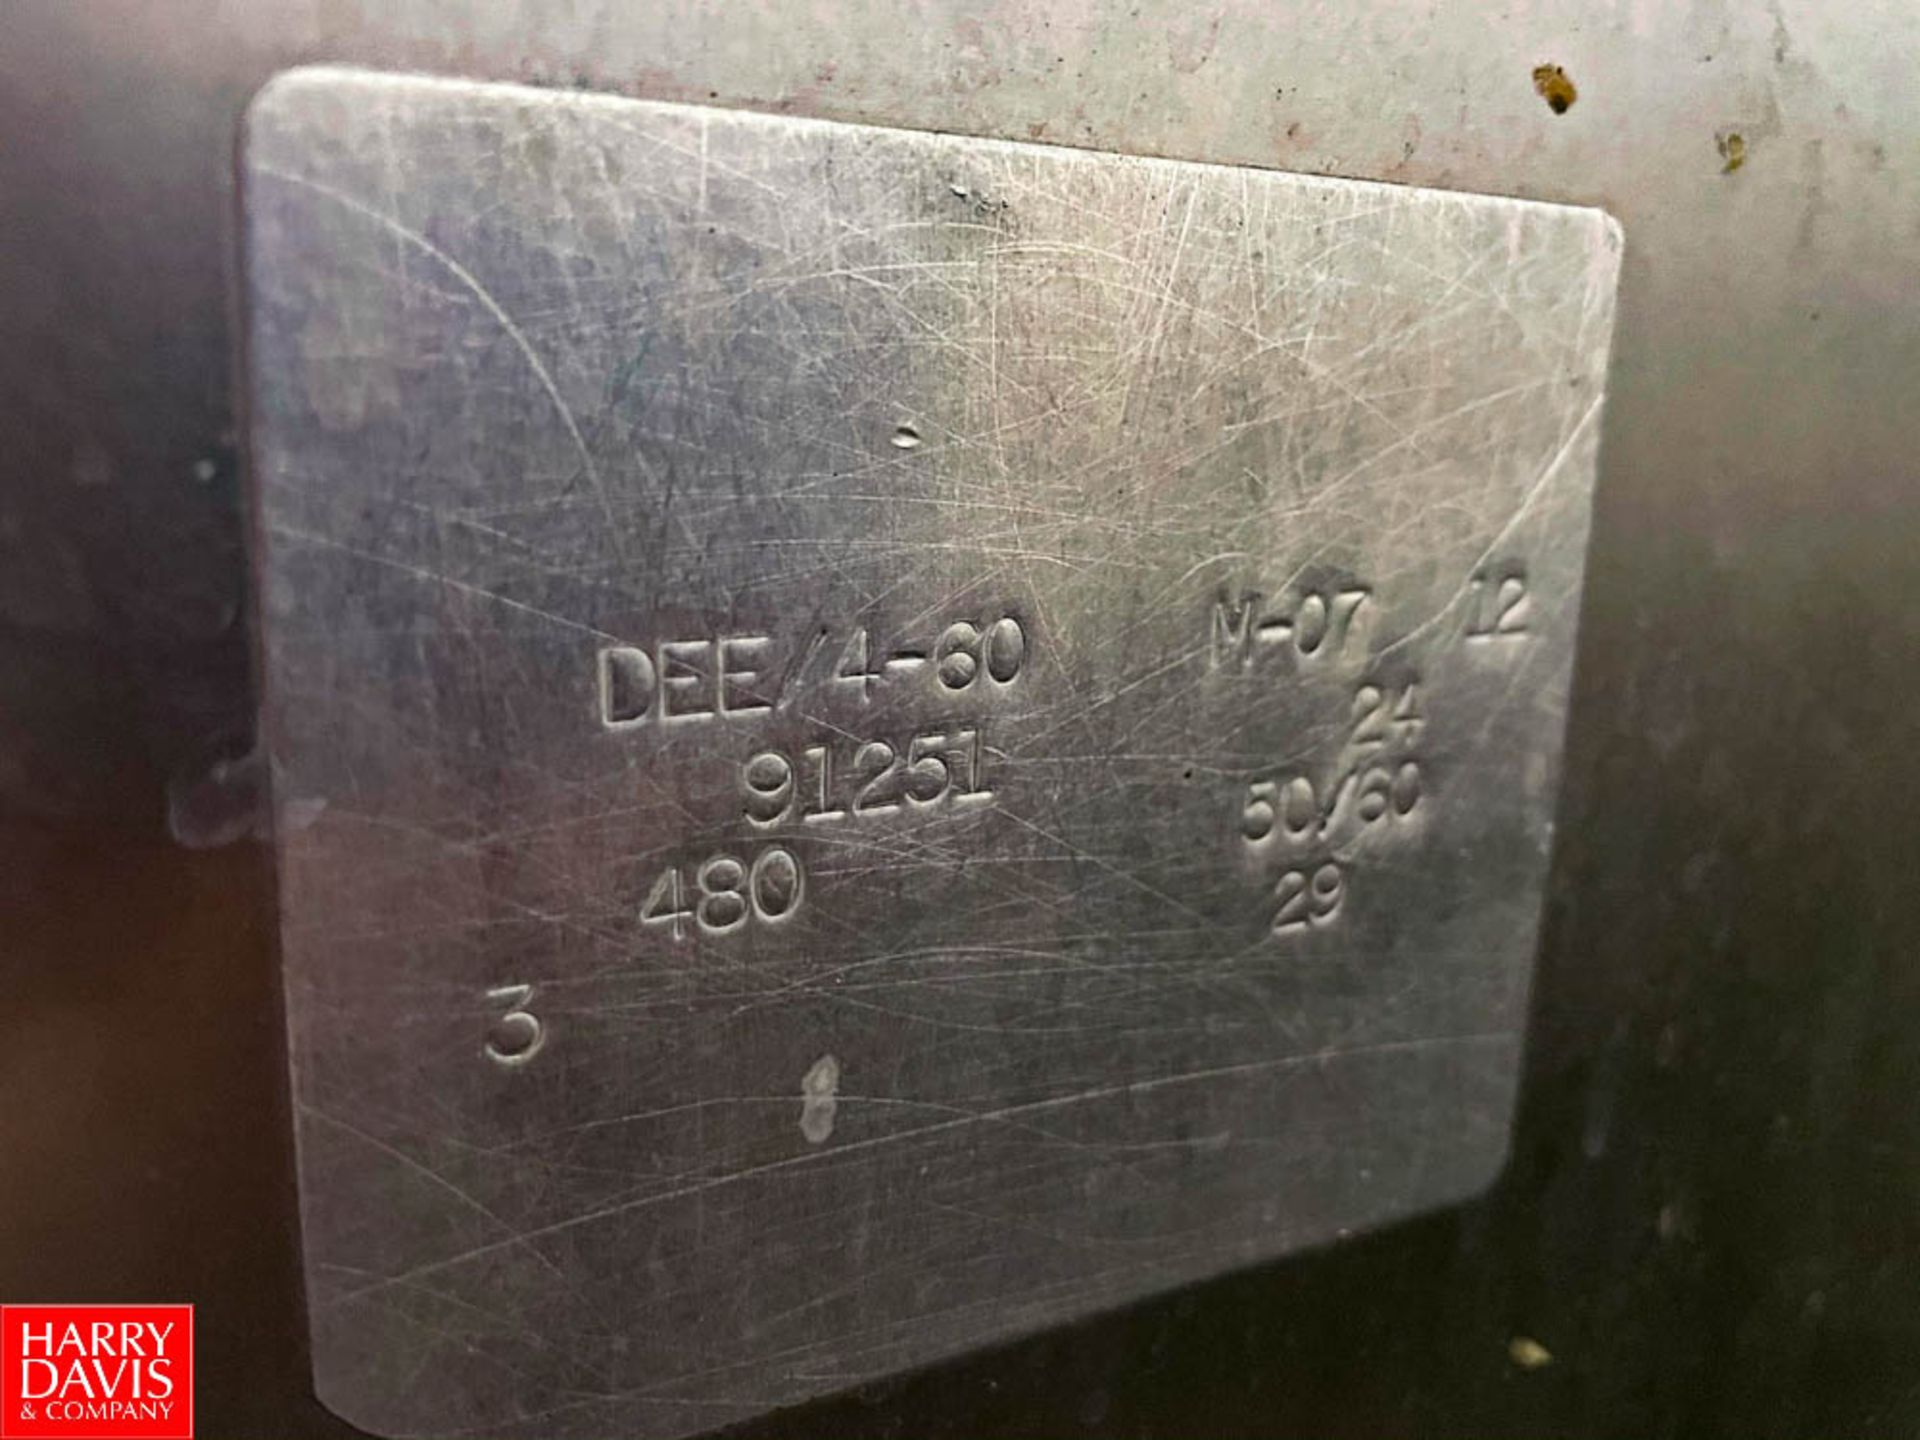 2012 Groen 60 Gallon Jacketed S/S Kettle Model: DTE/4-60 SN: 91251. Rigging Fee: $750 - Image 3 of 3